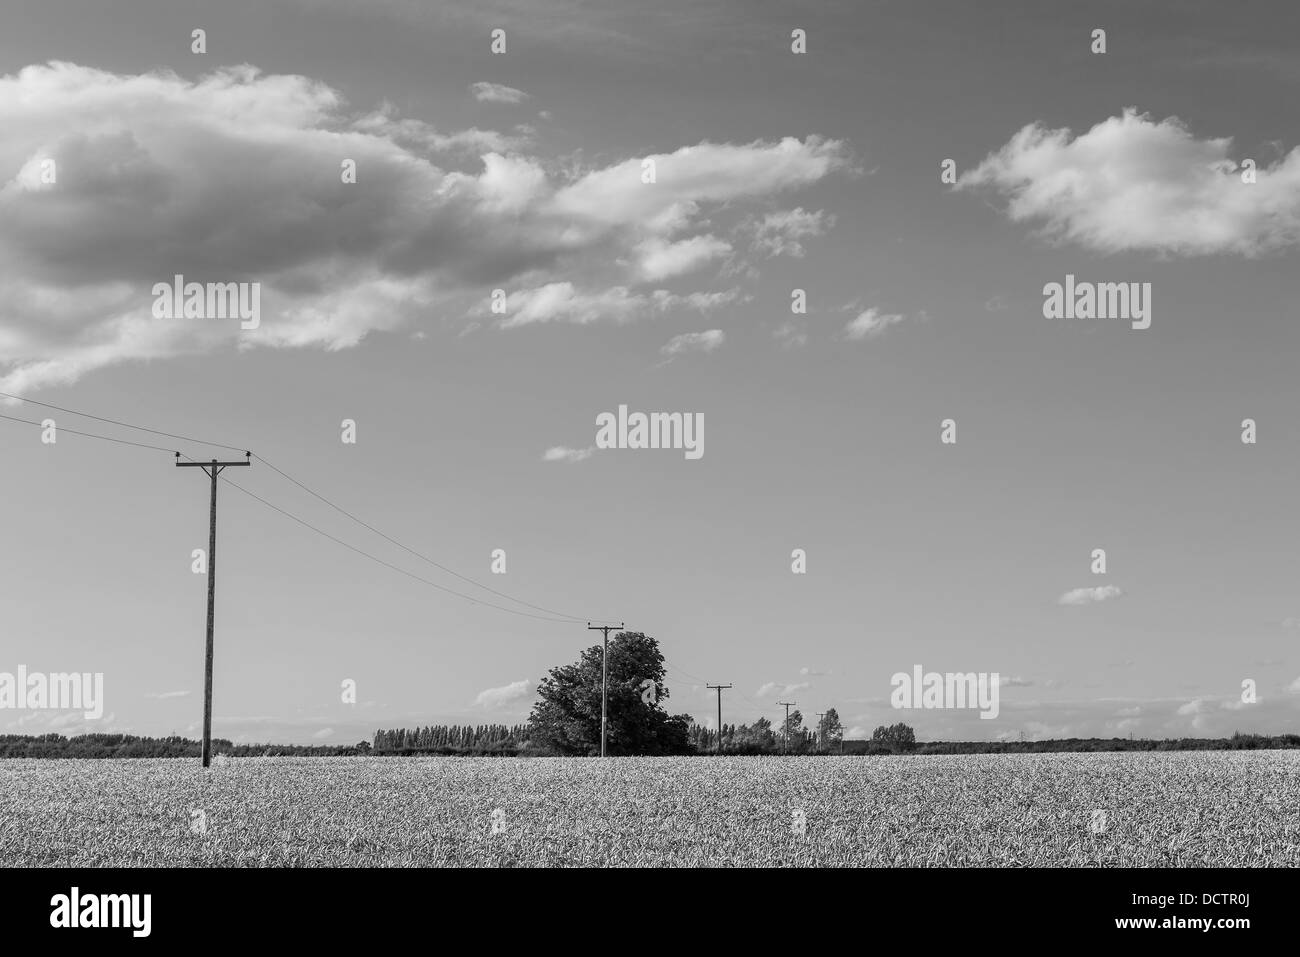 Summer wheat field with clouds in the sky. - Stock Image